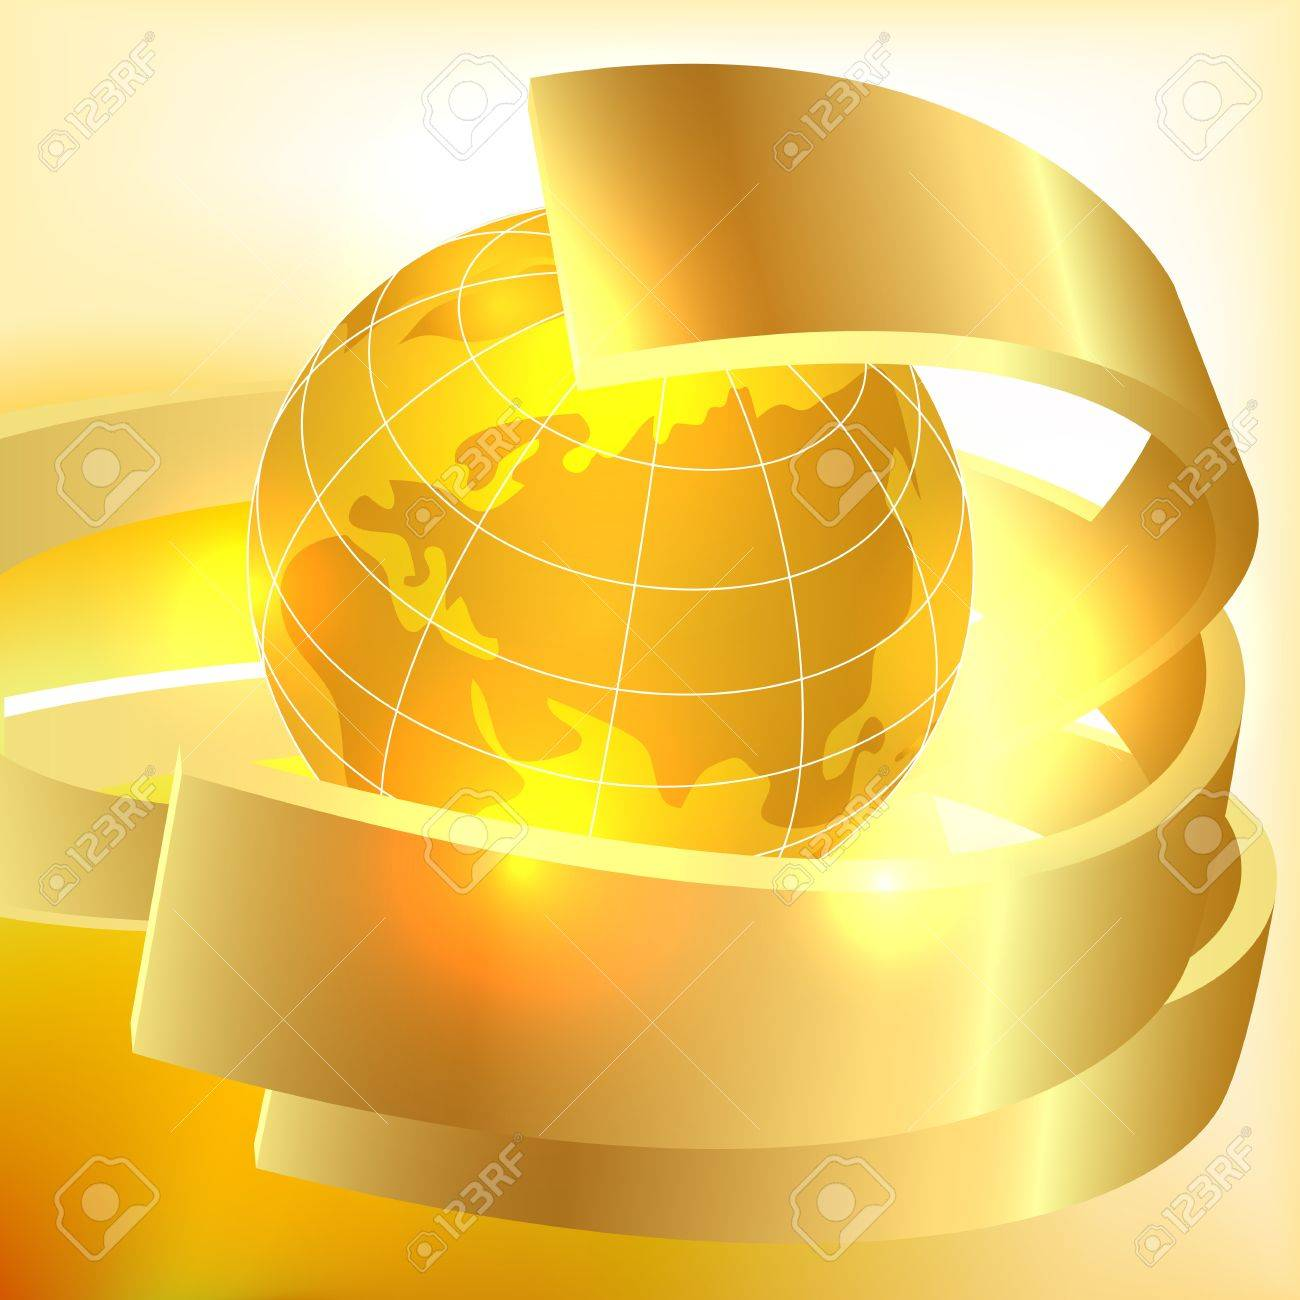 Golden Earth background Stock Vector - 14325373